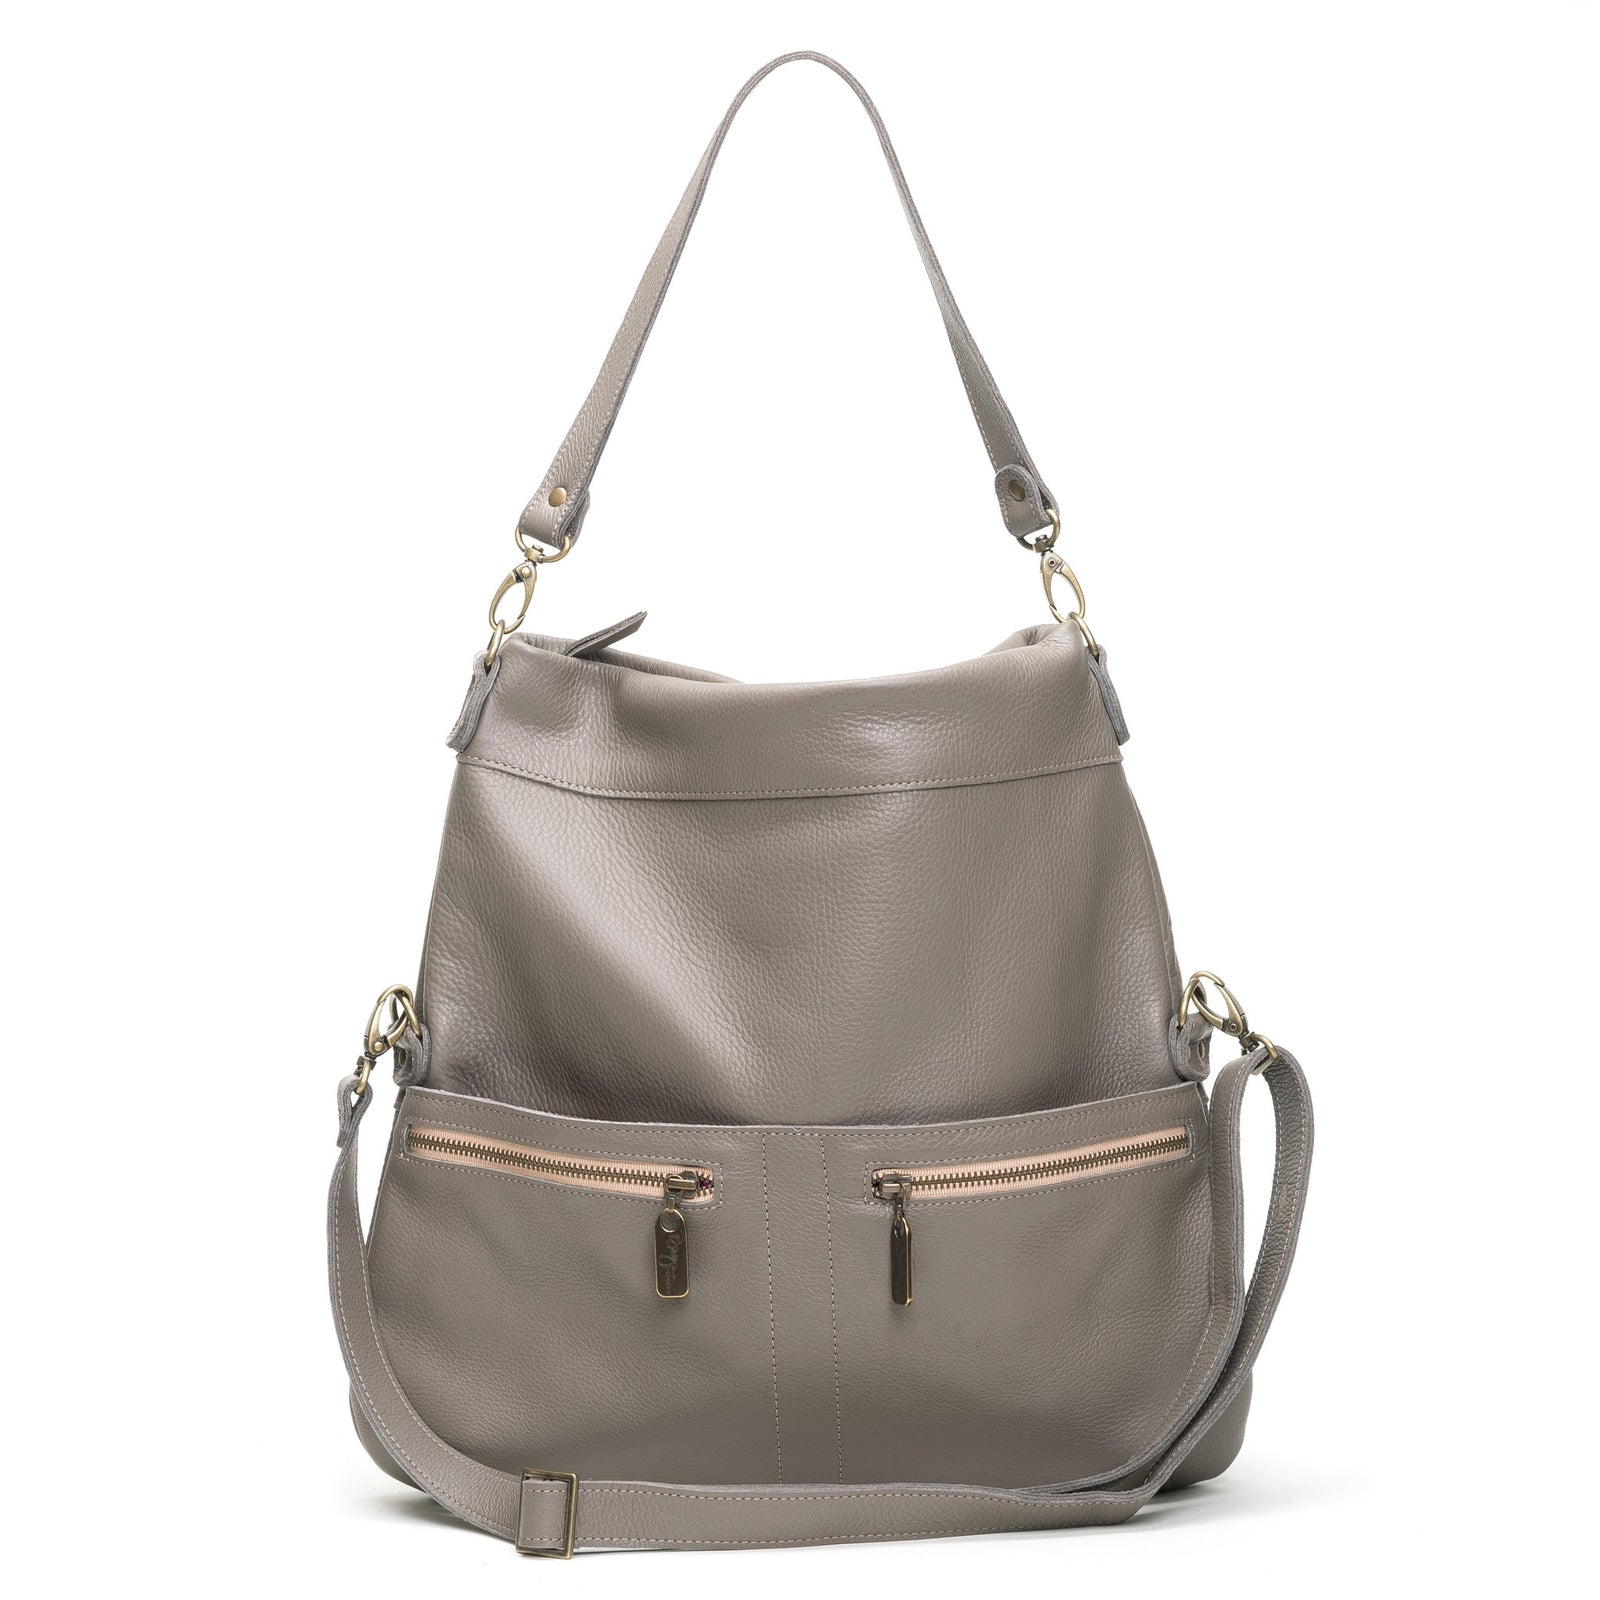 Lauren Crossbody - Oyster Shell - Brynn Capella, Large Crossbody